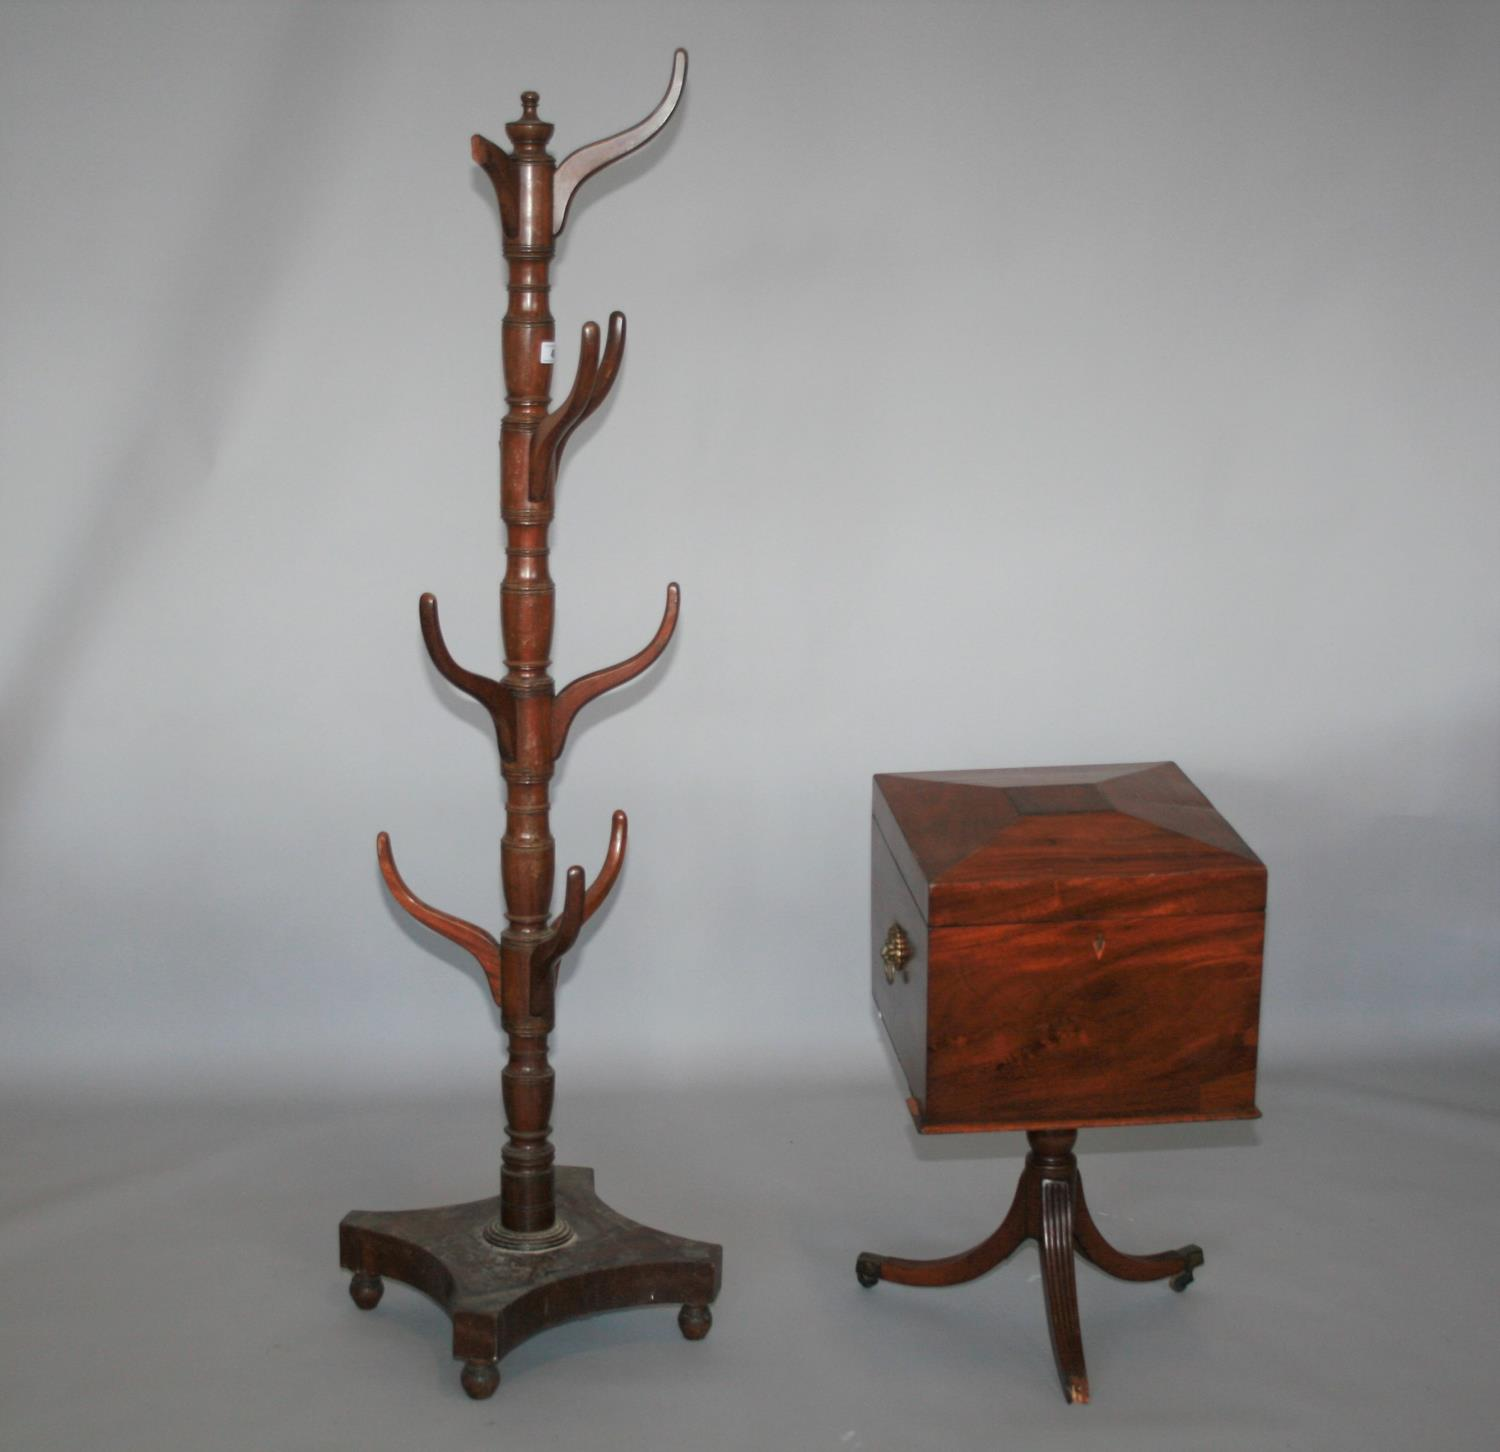 Regency mahogany hat and coat stand (40W x 165H) and regency mahogany wine cooler, as found.